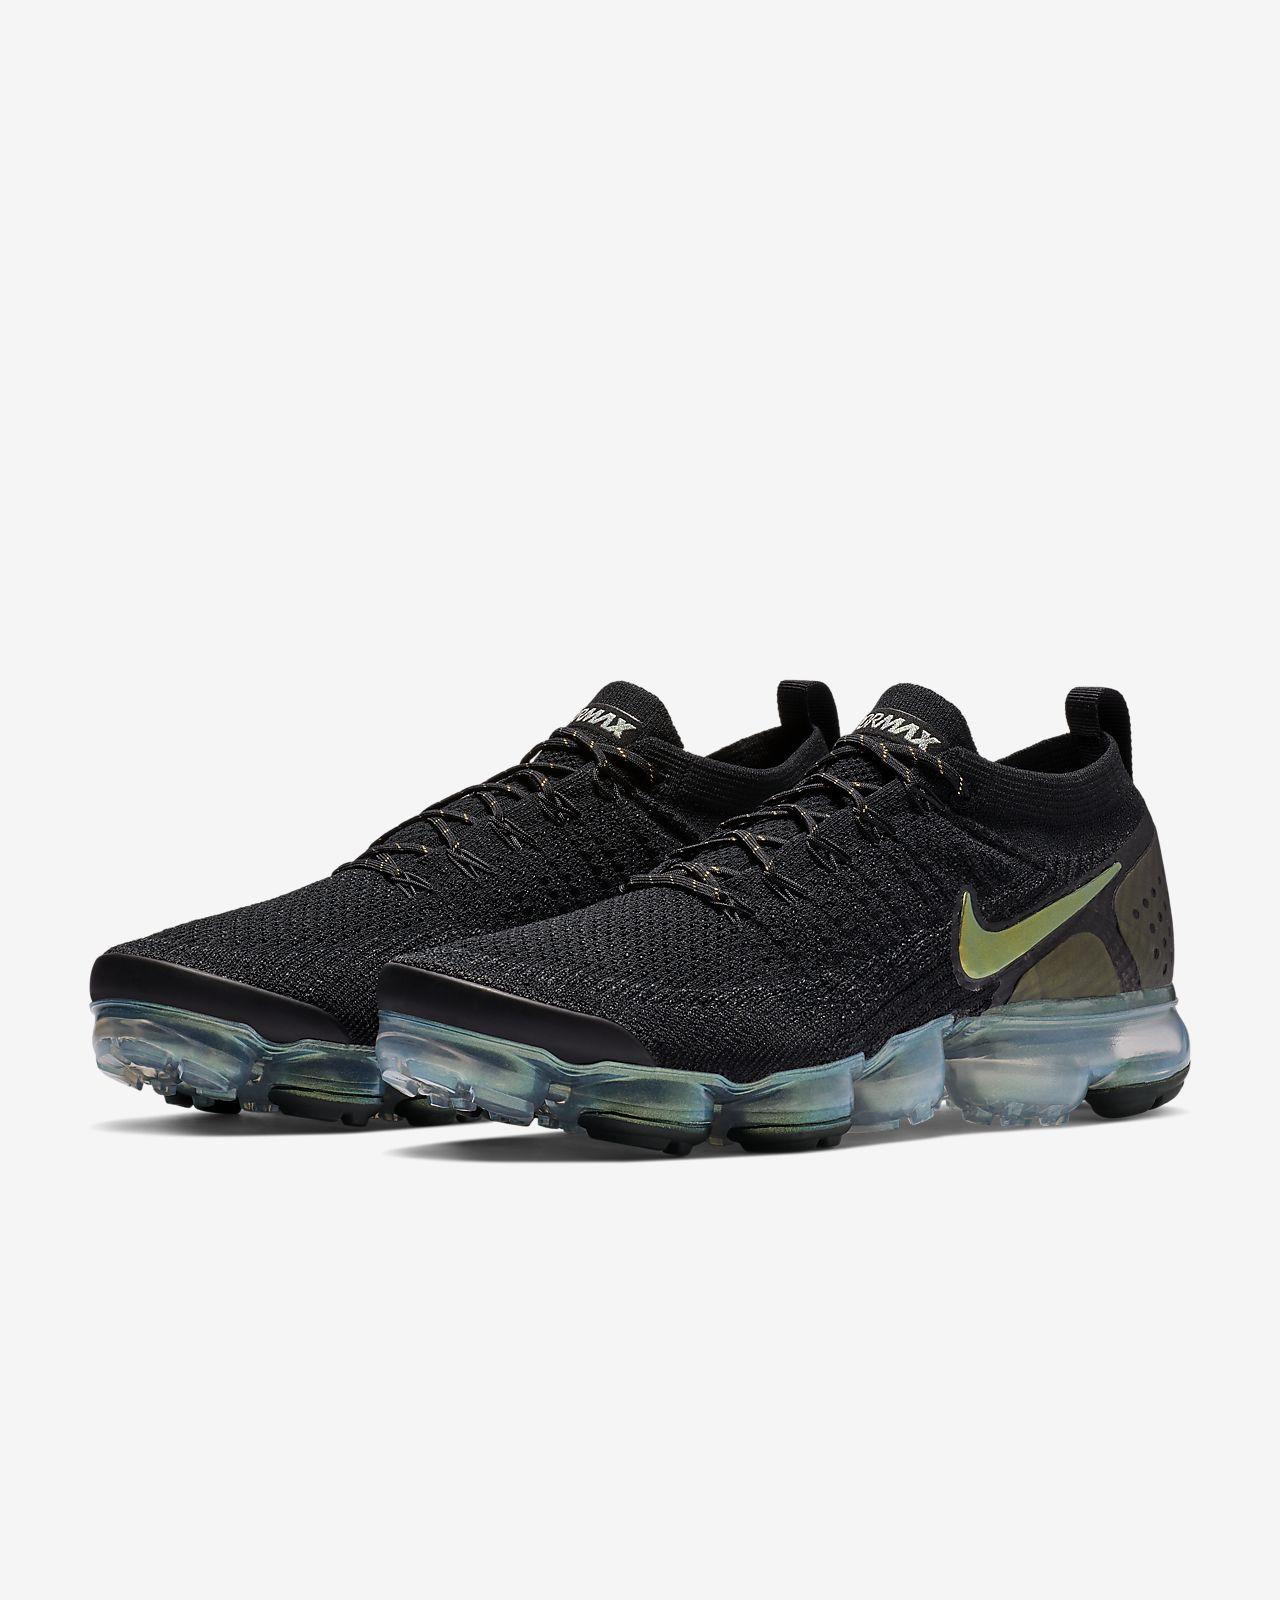 new arrive 33116 134a3 ... Nike Air VaporMax Flyknit 2 sko